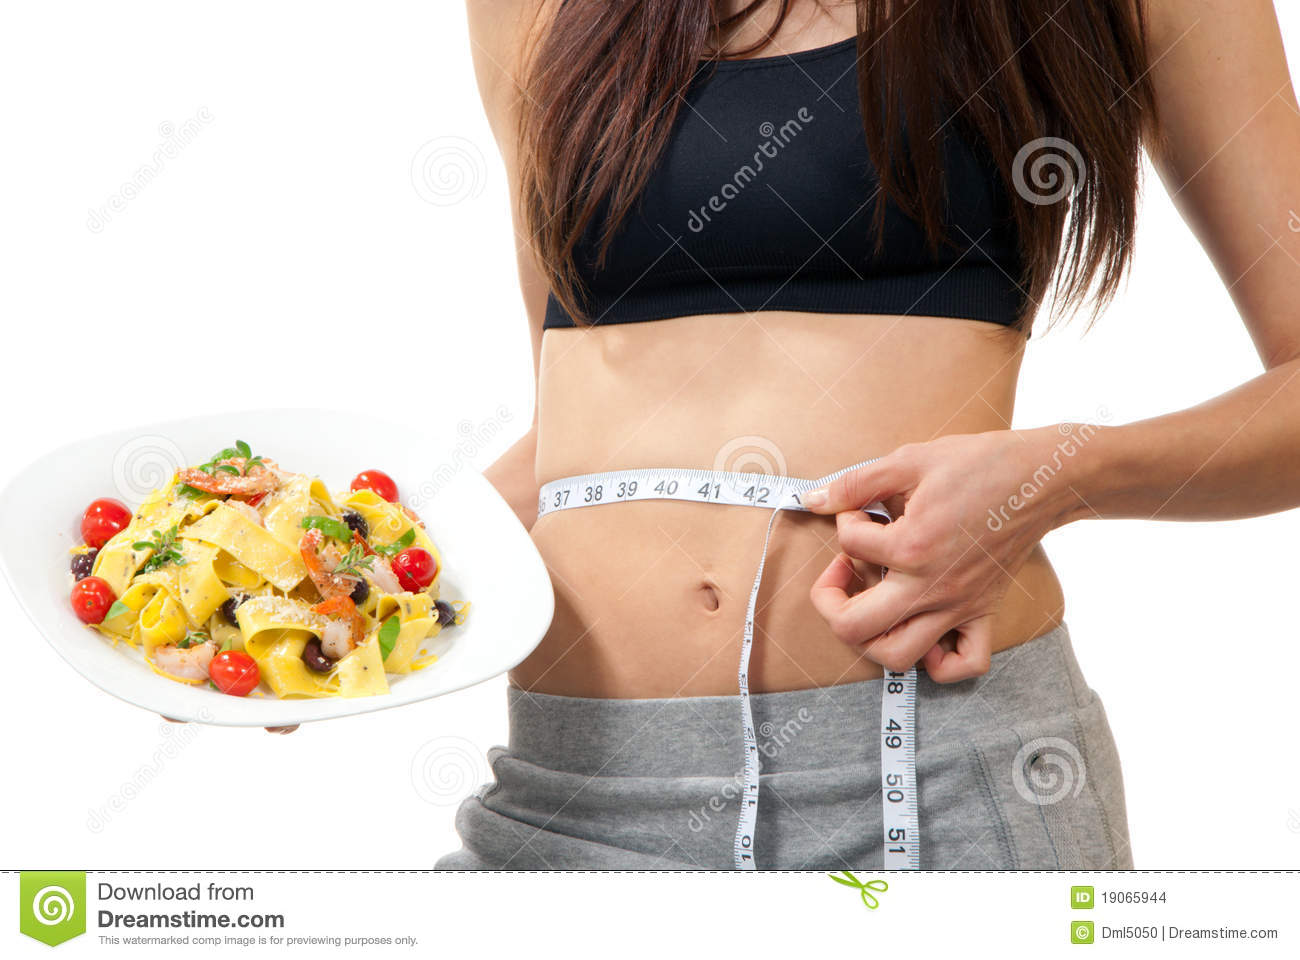 Woman measuring waist and holding diet food